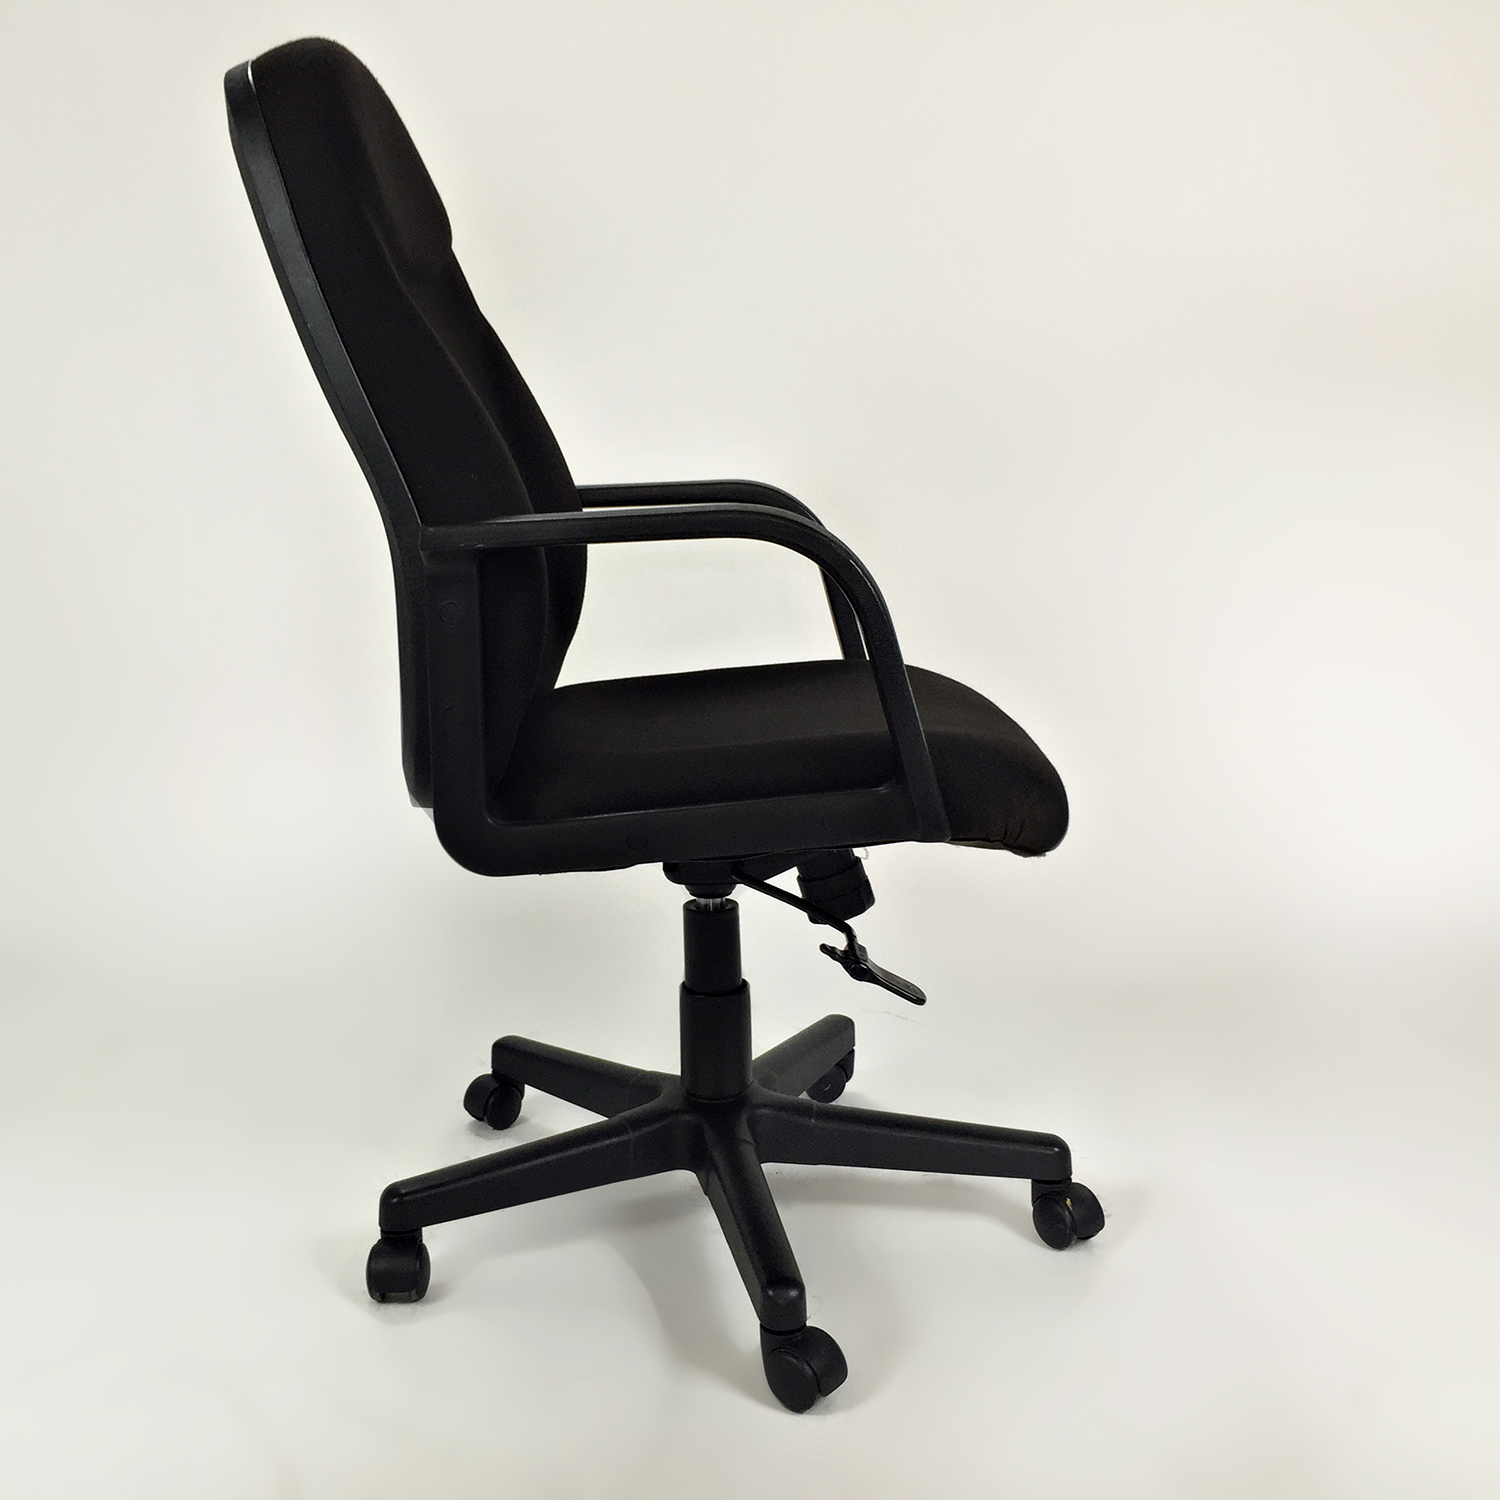 Furniture Chairs Black 78 Off Unknown Brand Black Office Chair Chairs